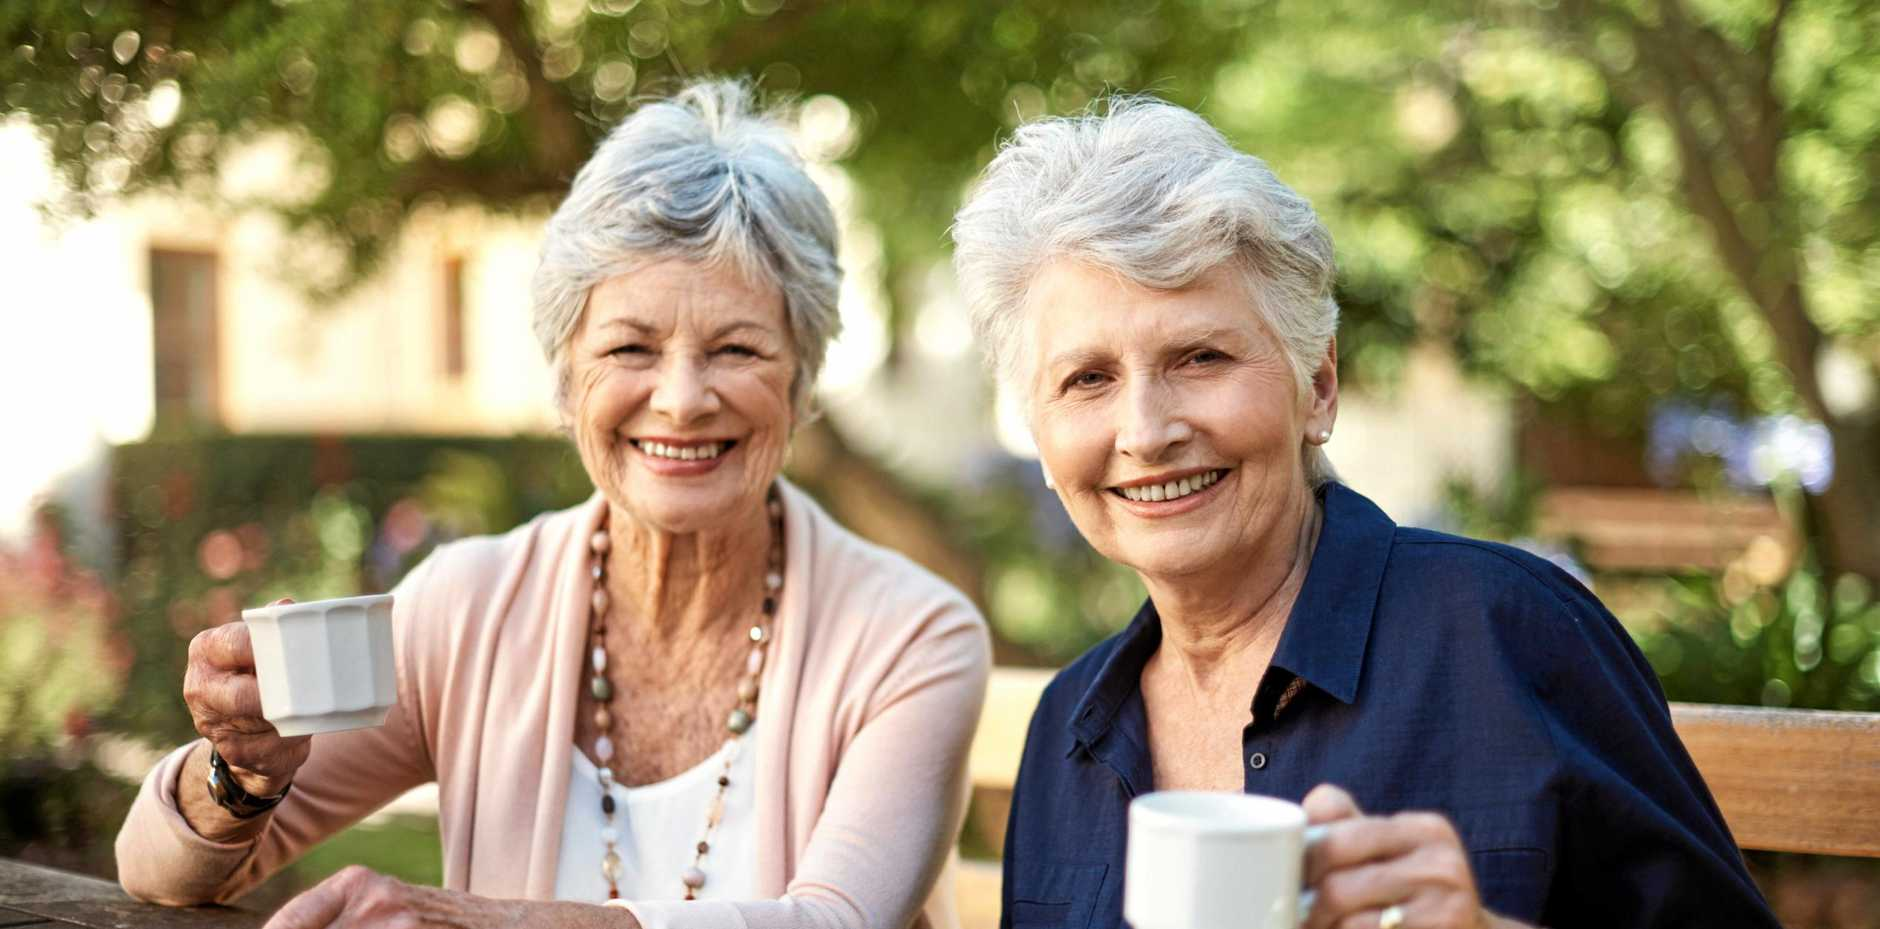 Portrait of two happy senior women having tea together out in the garden